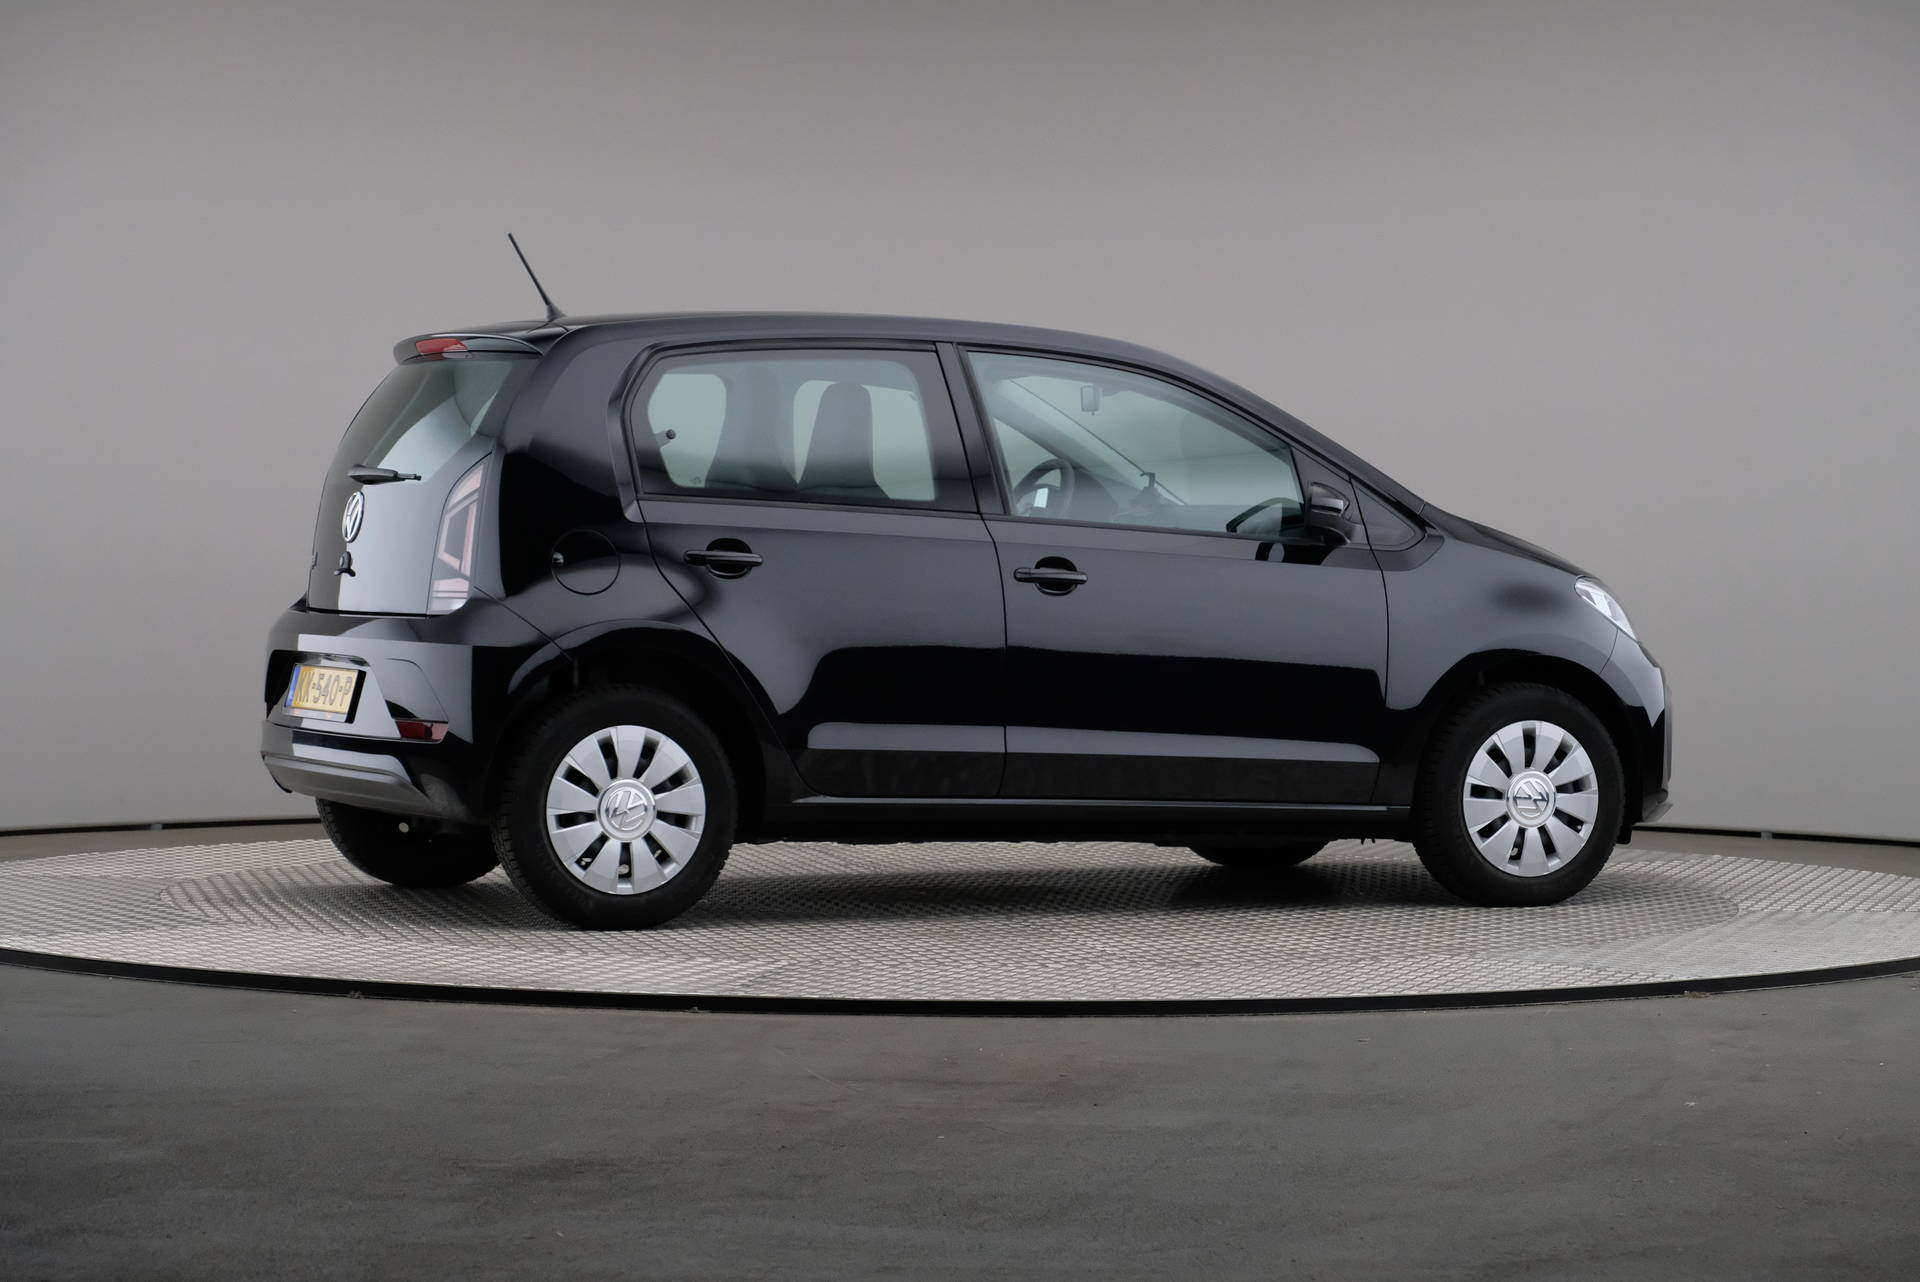 Volkswagen up! 1.0 44kW Move up! BlueMotion Technology, Airconditioning, 360-image21